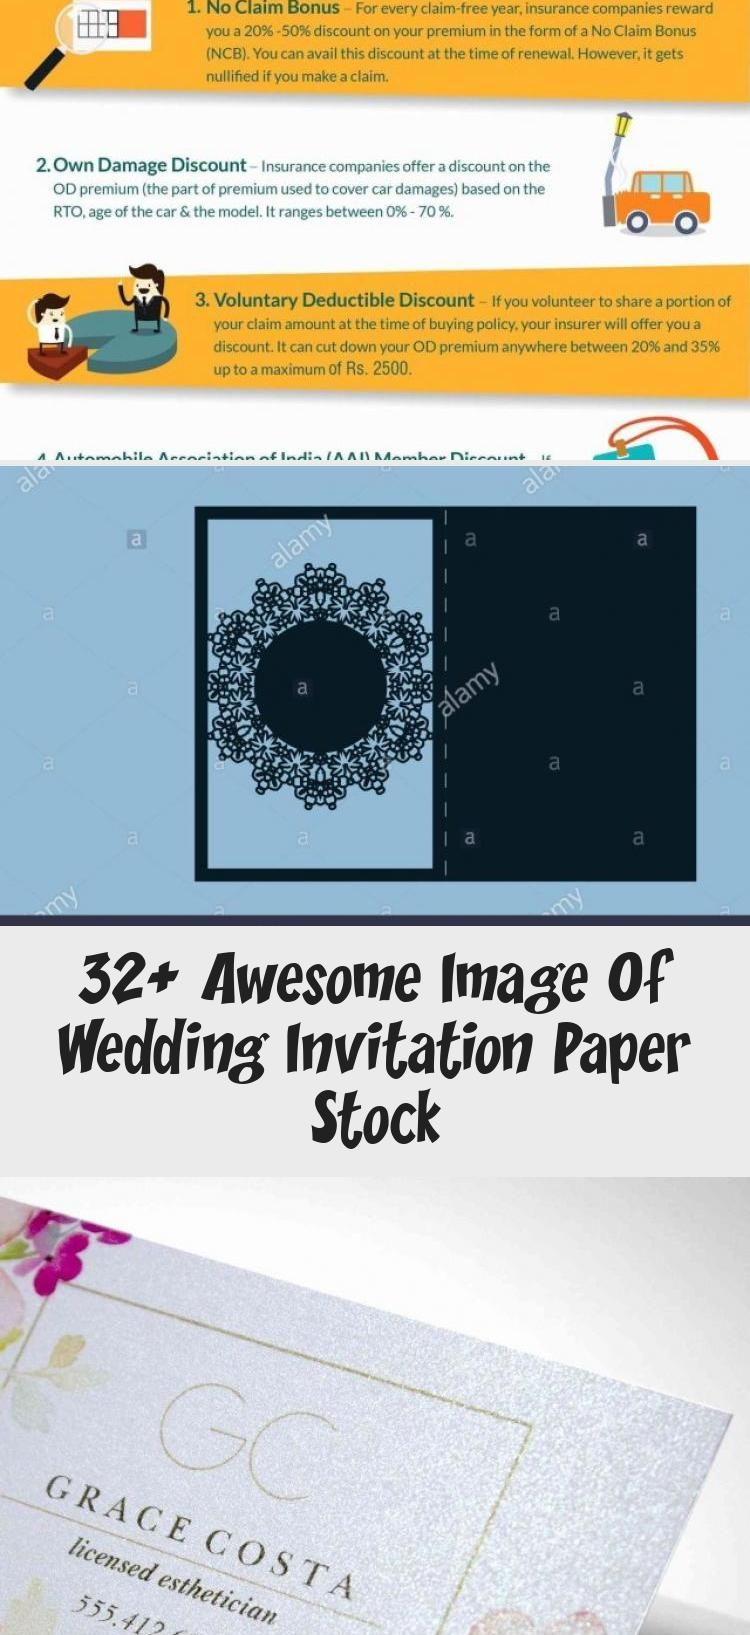 32 Awesome Image Of Wedding Invitation Paper Stock Wedding Invitation Paper Wedding Invitations Invitation Paper